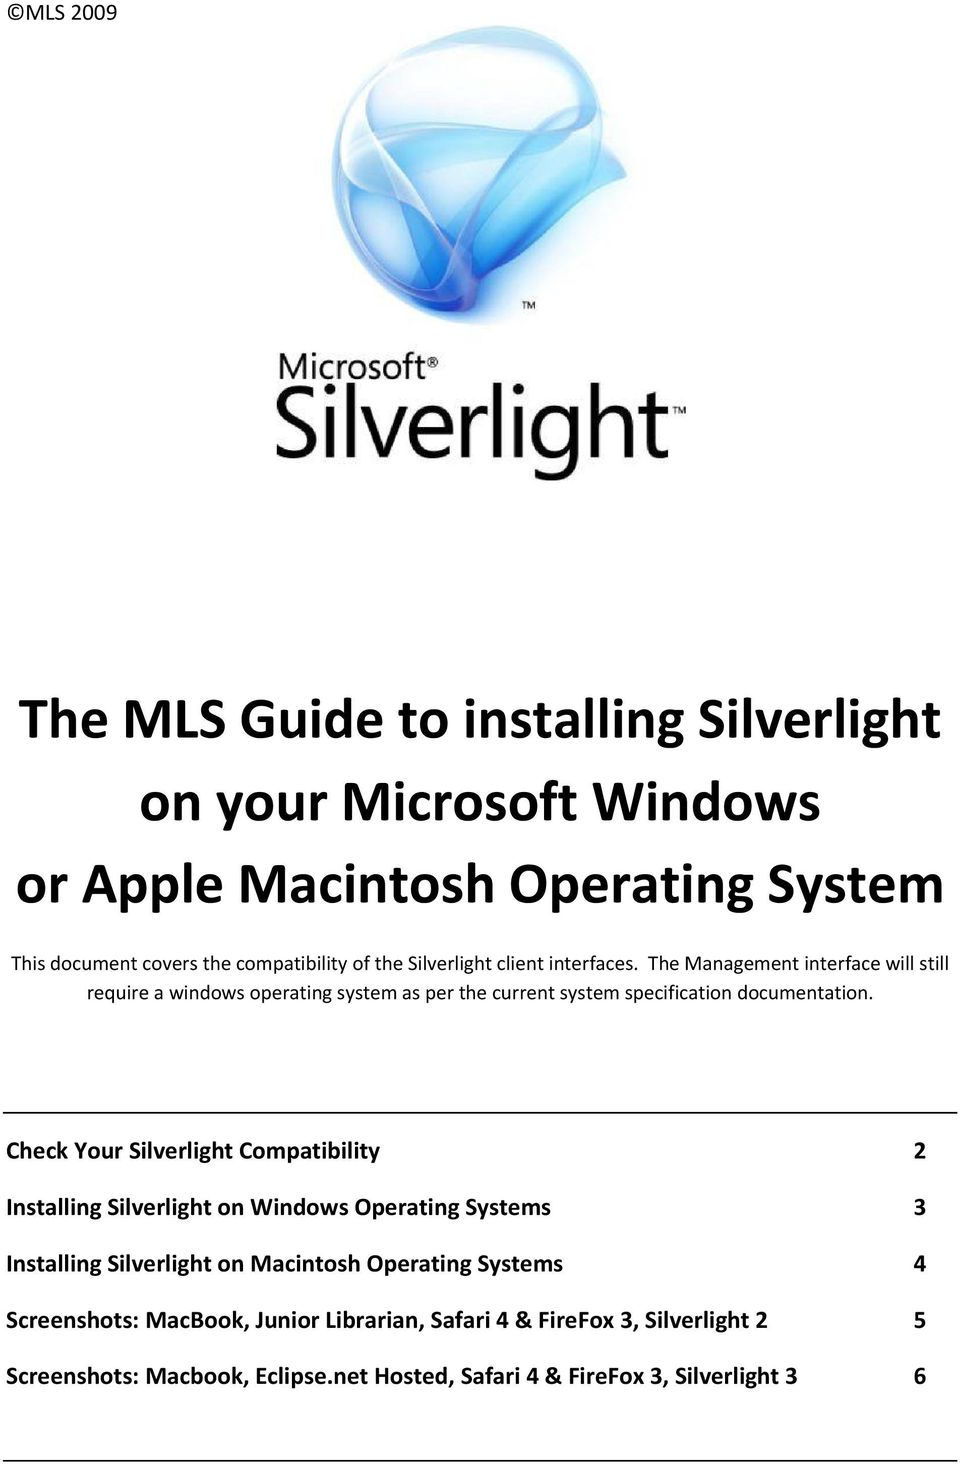 The MLS Guide to installing Silverlight on your Microsoft